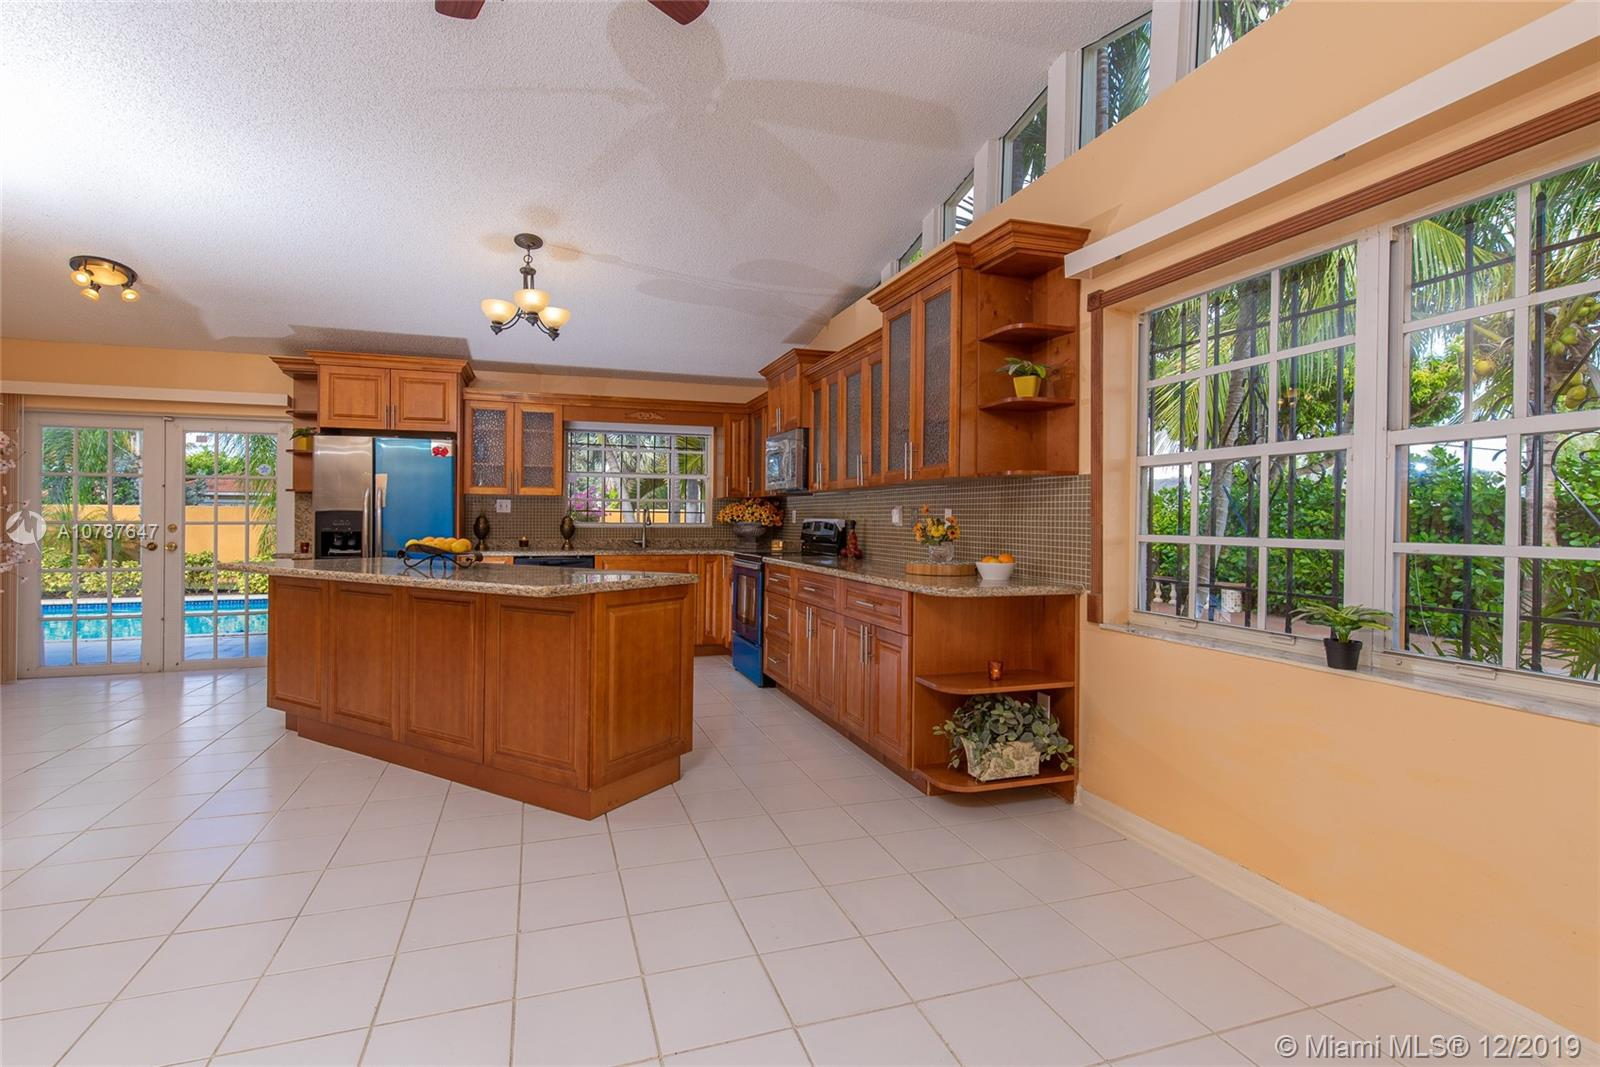 14481 SW 160th Ter, Miami, Florida 33177, 4 Bedrooms Bedrooms, ,2 BathroomsBathrooms,Residential,For Sale,14481 SW 160th Ter,A10787647